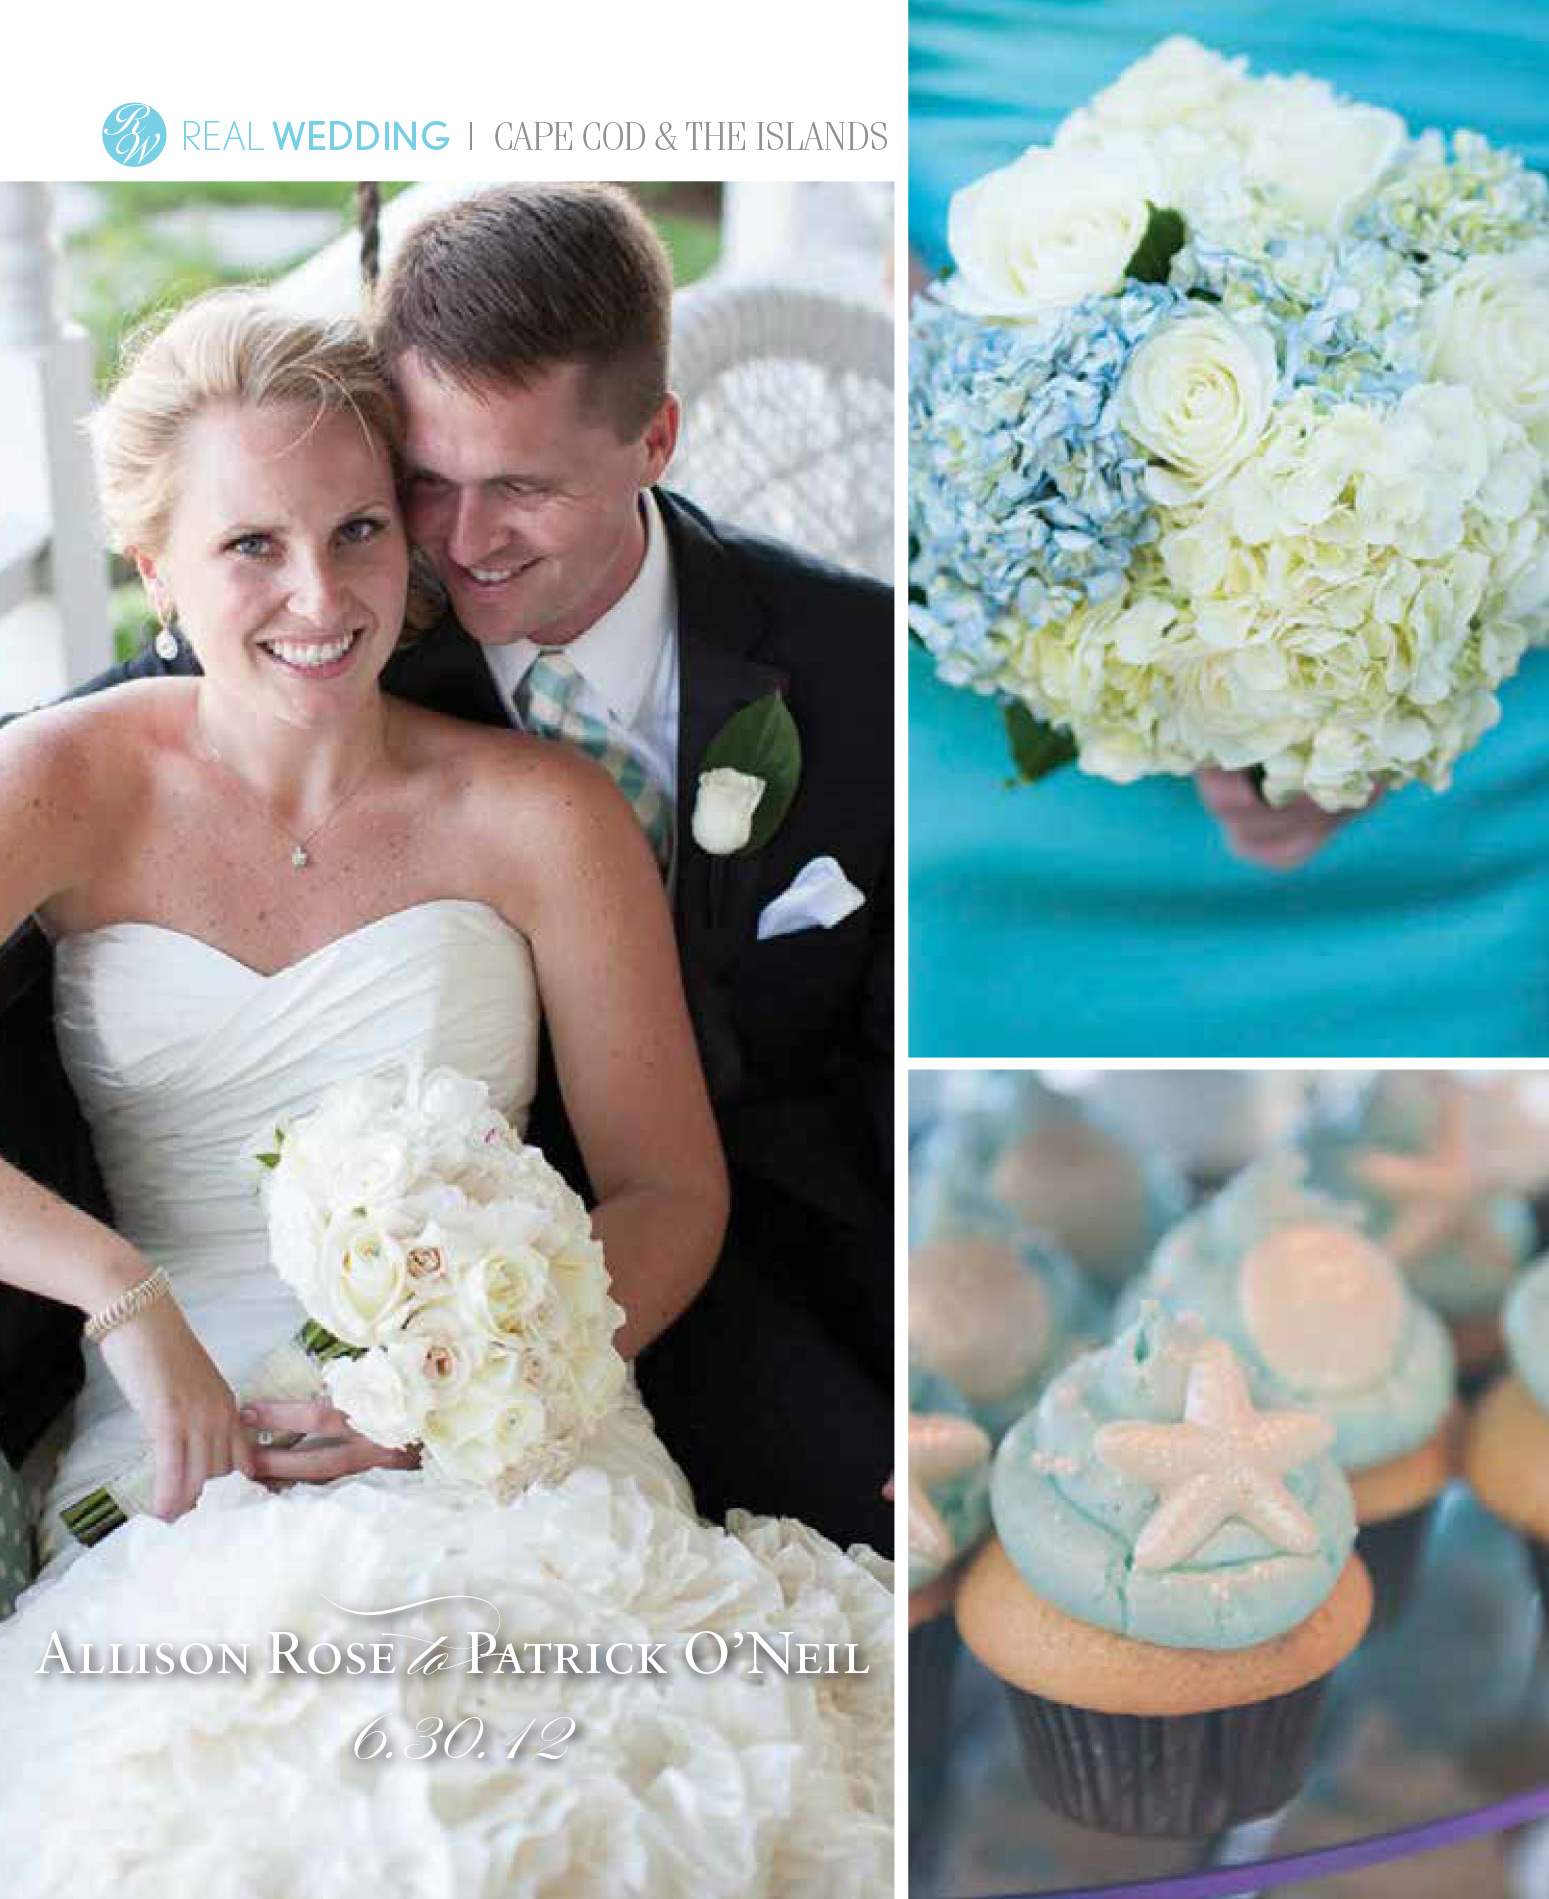 SNEW Real Wedding - Cape Cod & the Islands